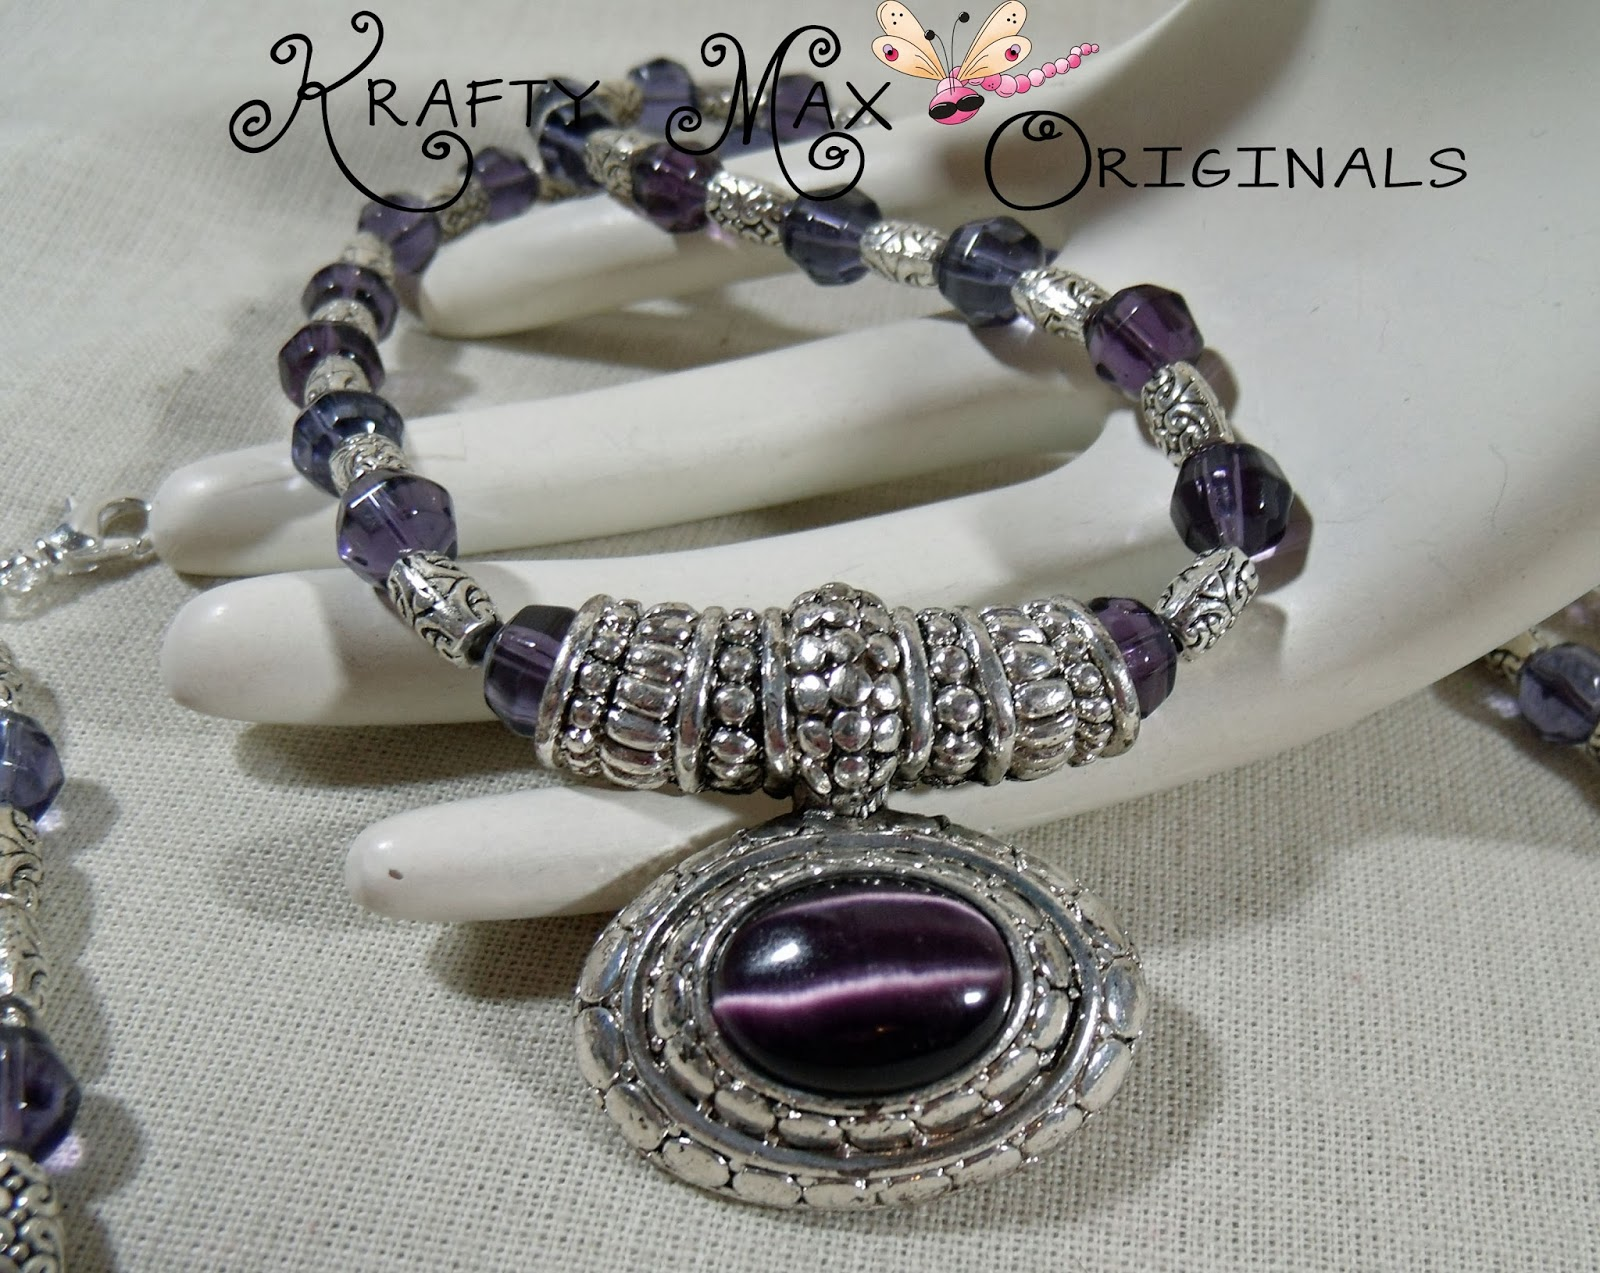 http://www.lajuliet.com/index.php/2013-01-04-15-21-51/ad/crystal,91/exclusive-purple-czech-beads-and-silver-delight-3-piece-necklace-set-a-krafty-max-original-design,120#